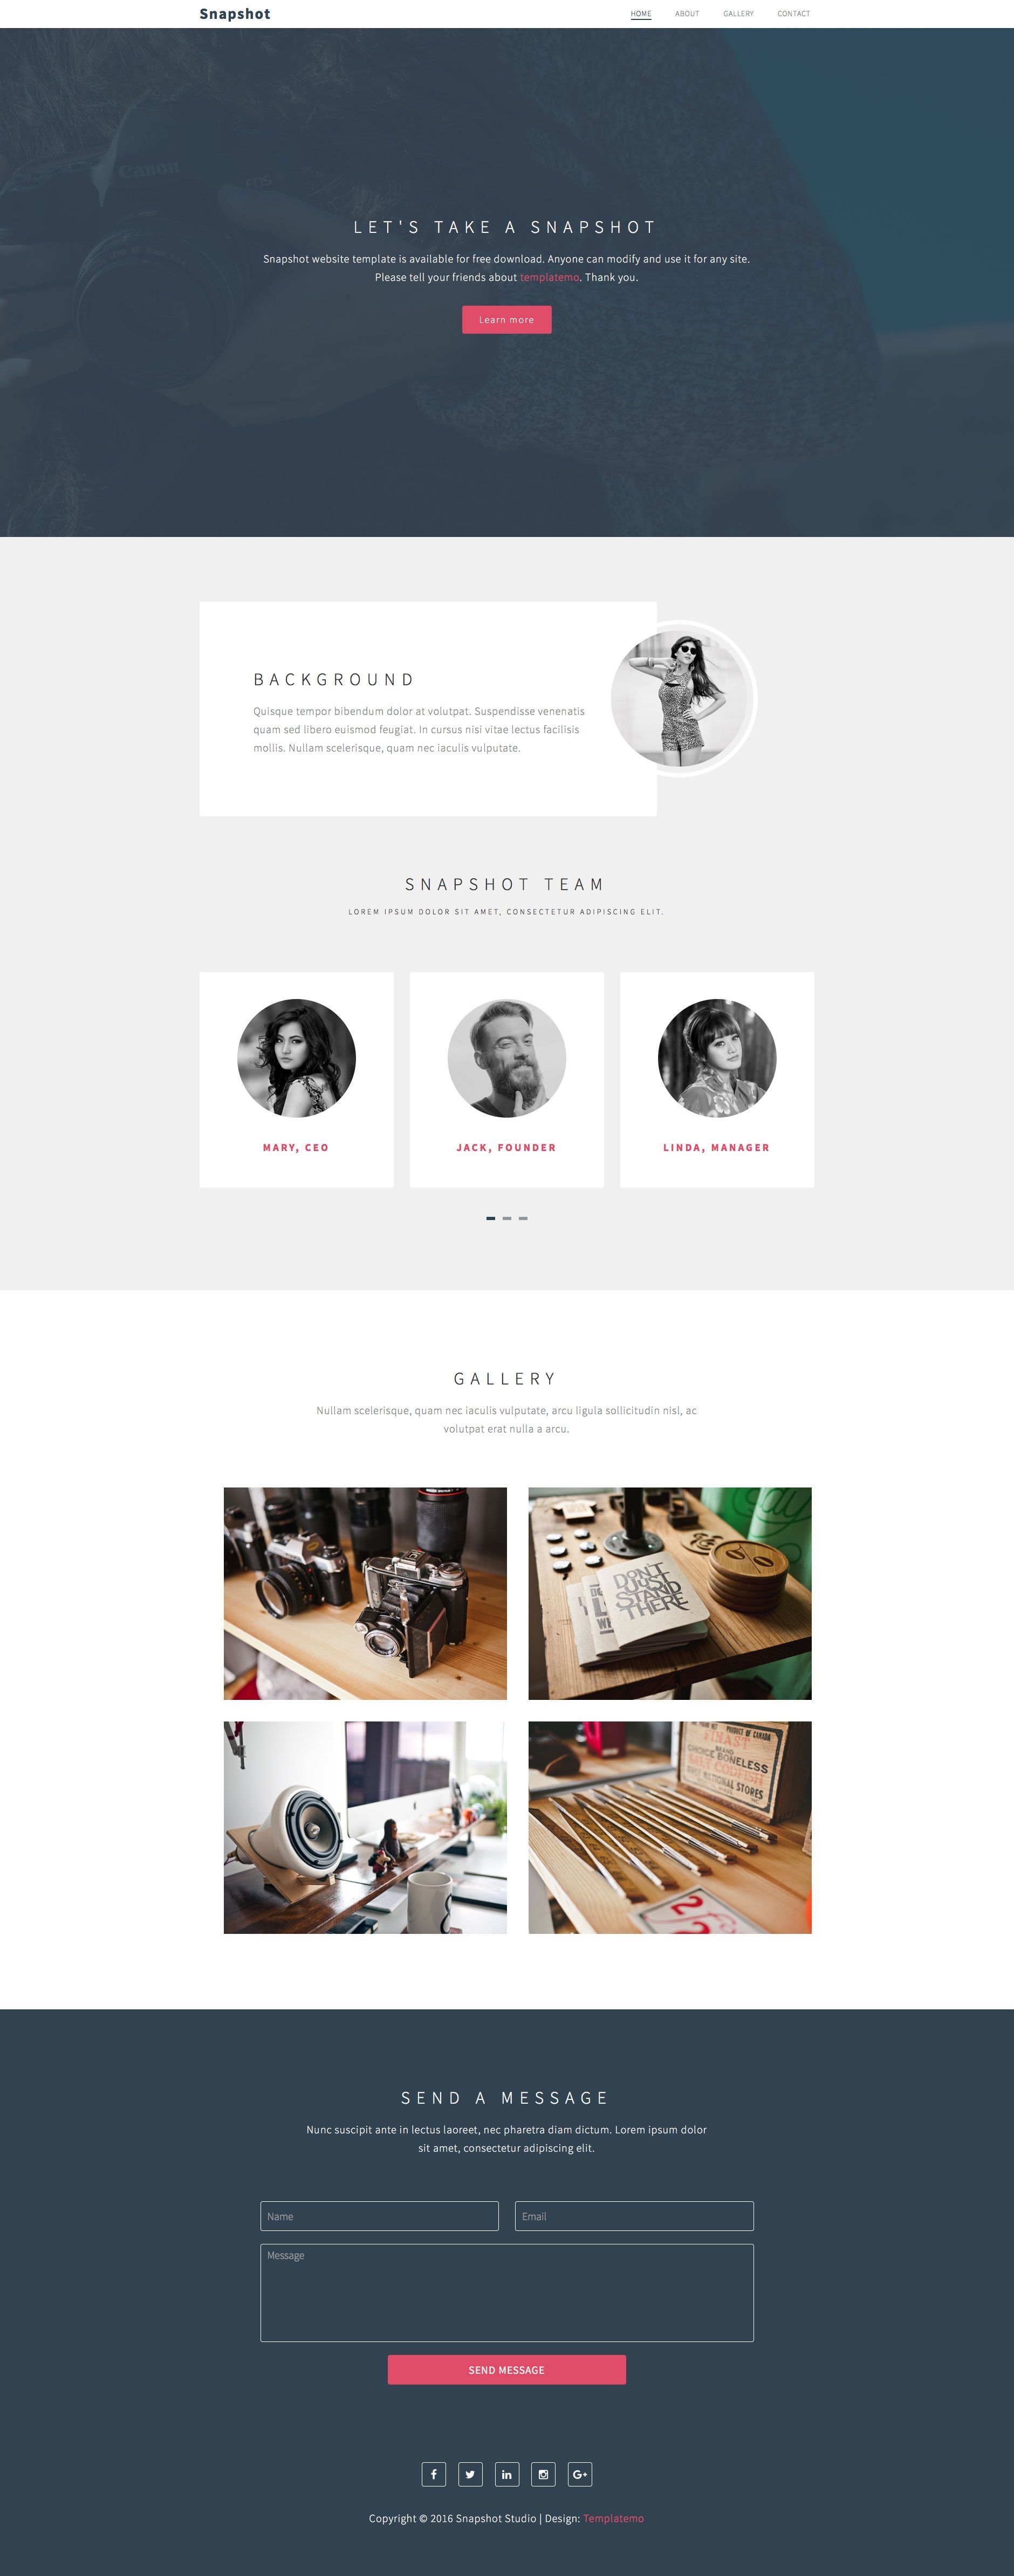 Snapshot Is A Free Html5 Landing Page Template Includes 4 Content Sections Background Images With Zoom Effect Carousel For Web Design Gallery Snapshots Html5 Html5 landing page template free